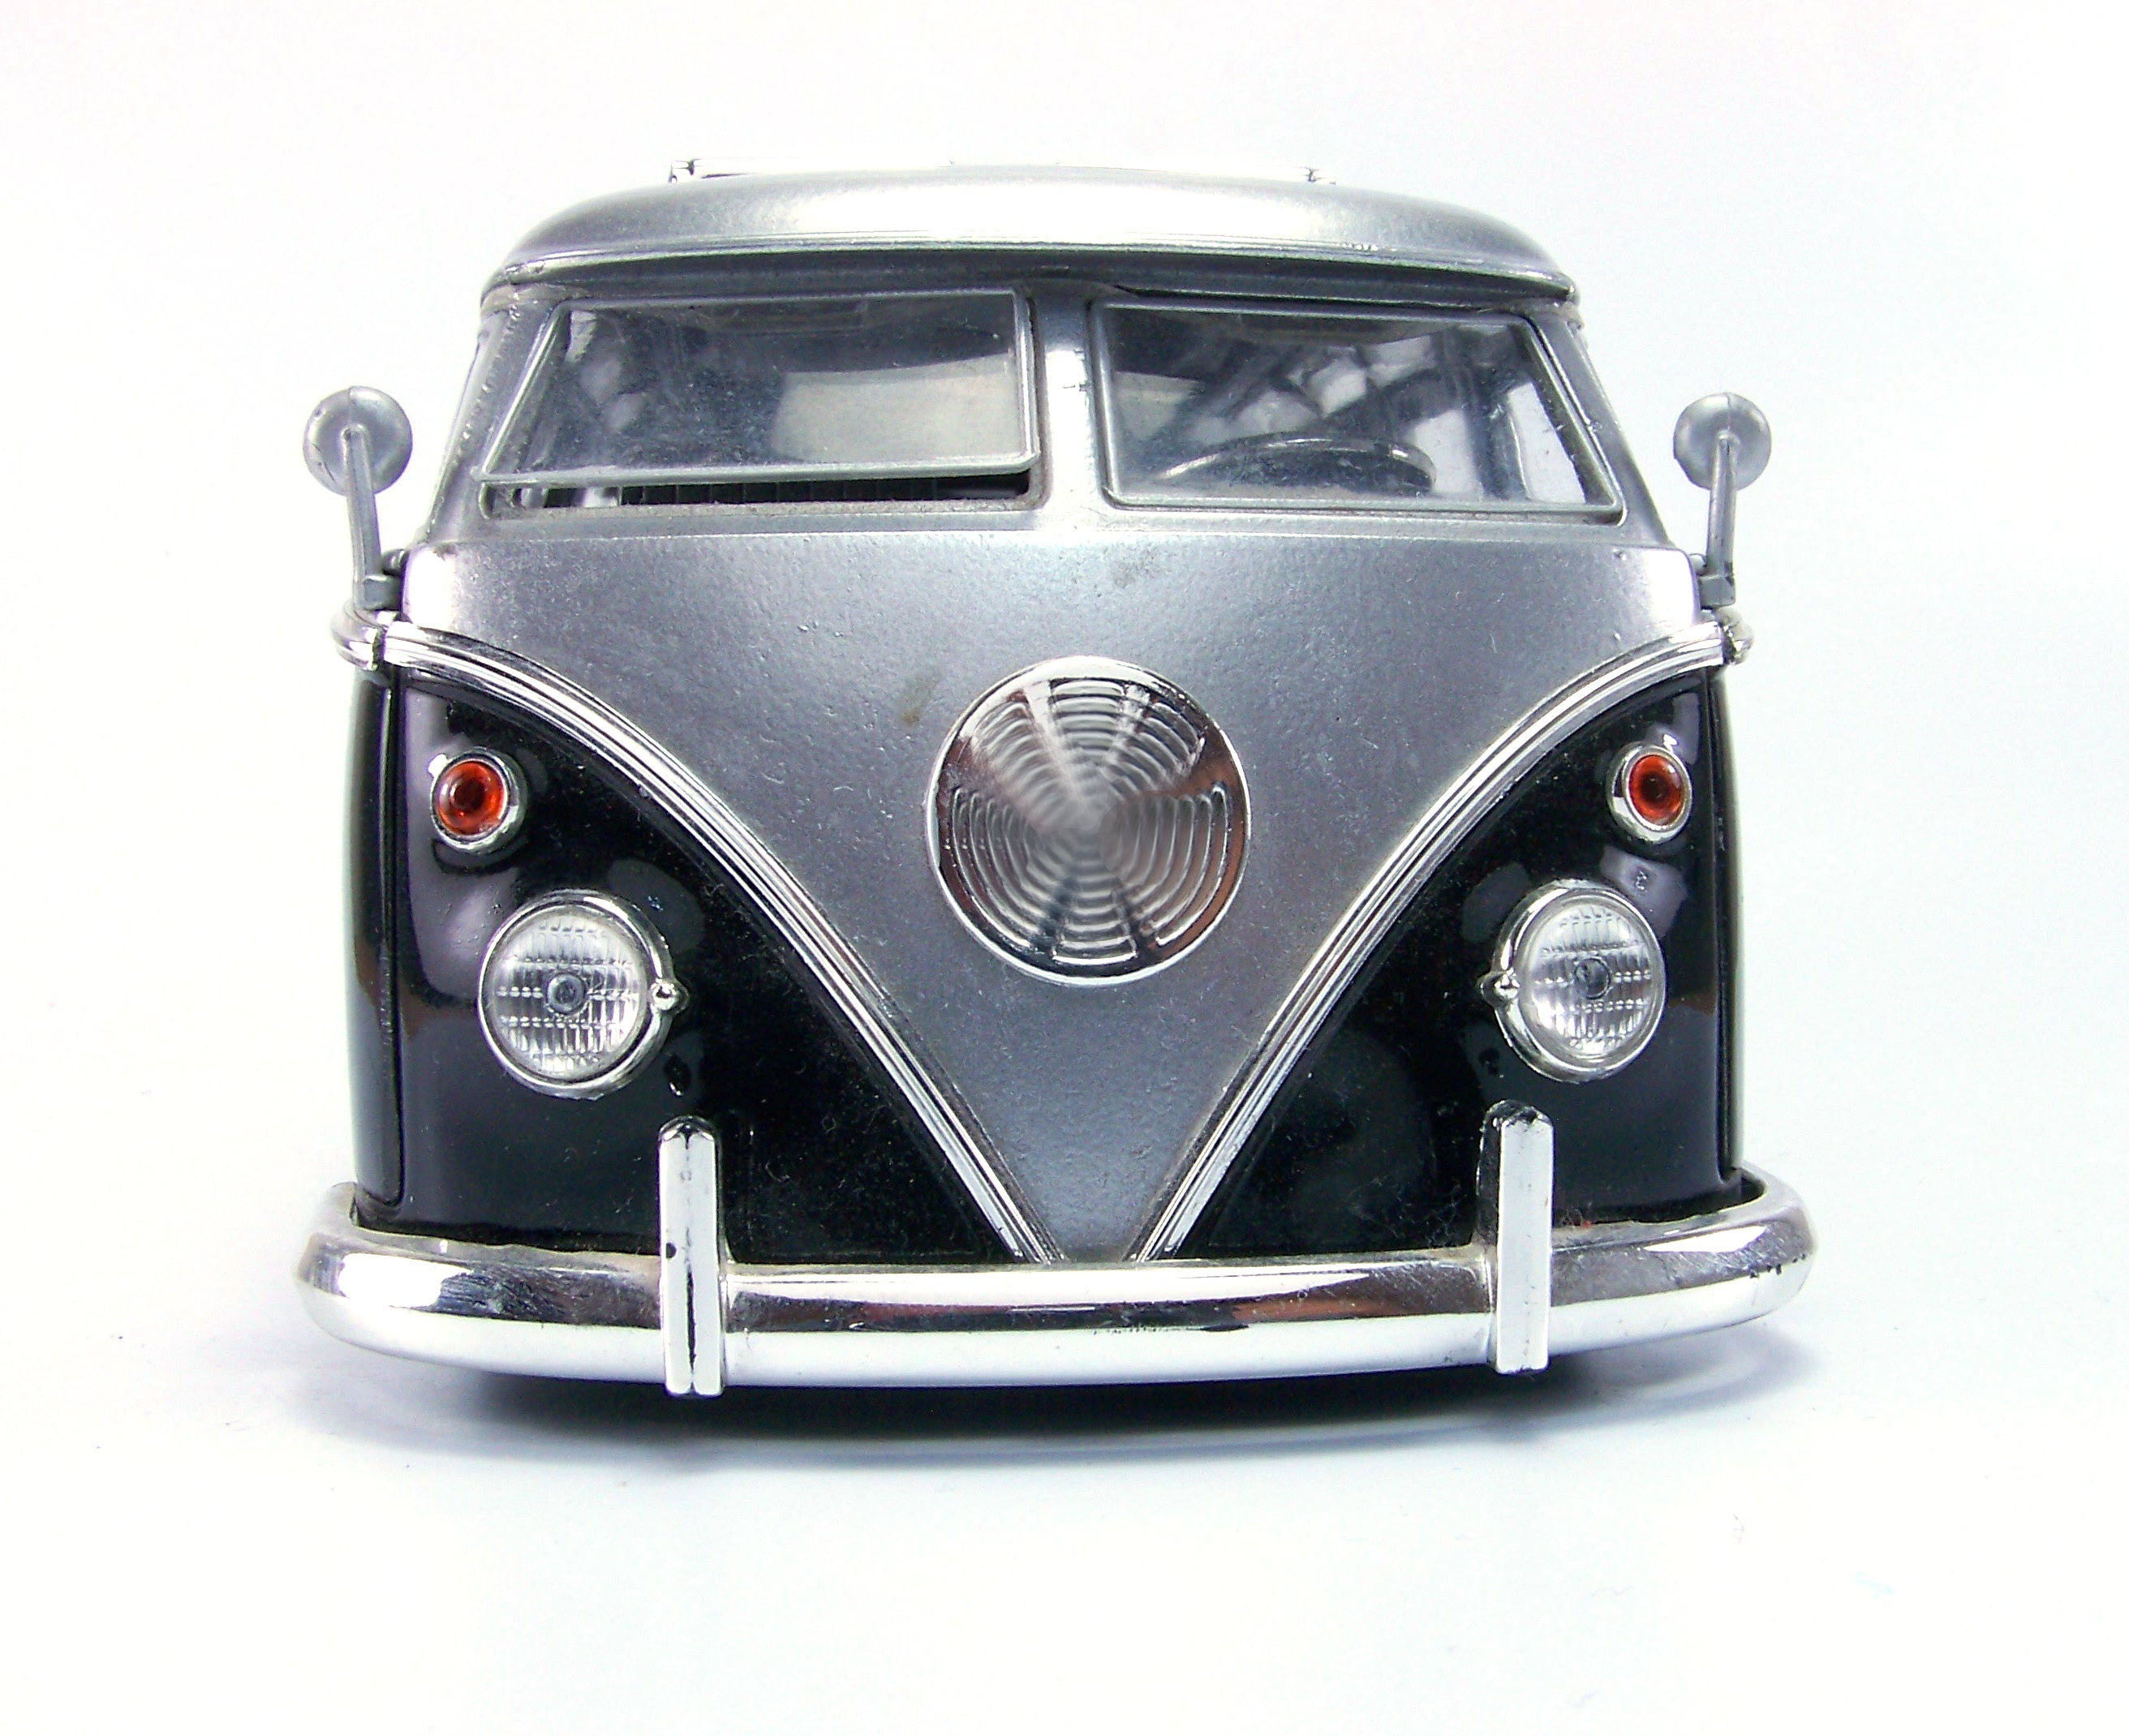 Toy van, Auto, New, Old, Oldtimer, HQ Photo